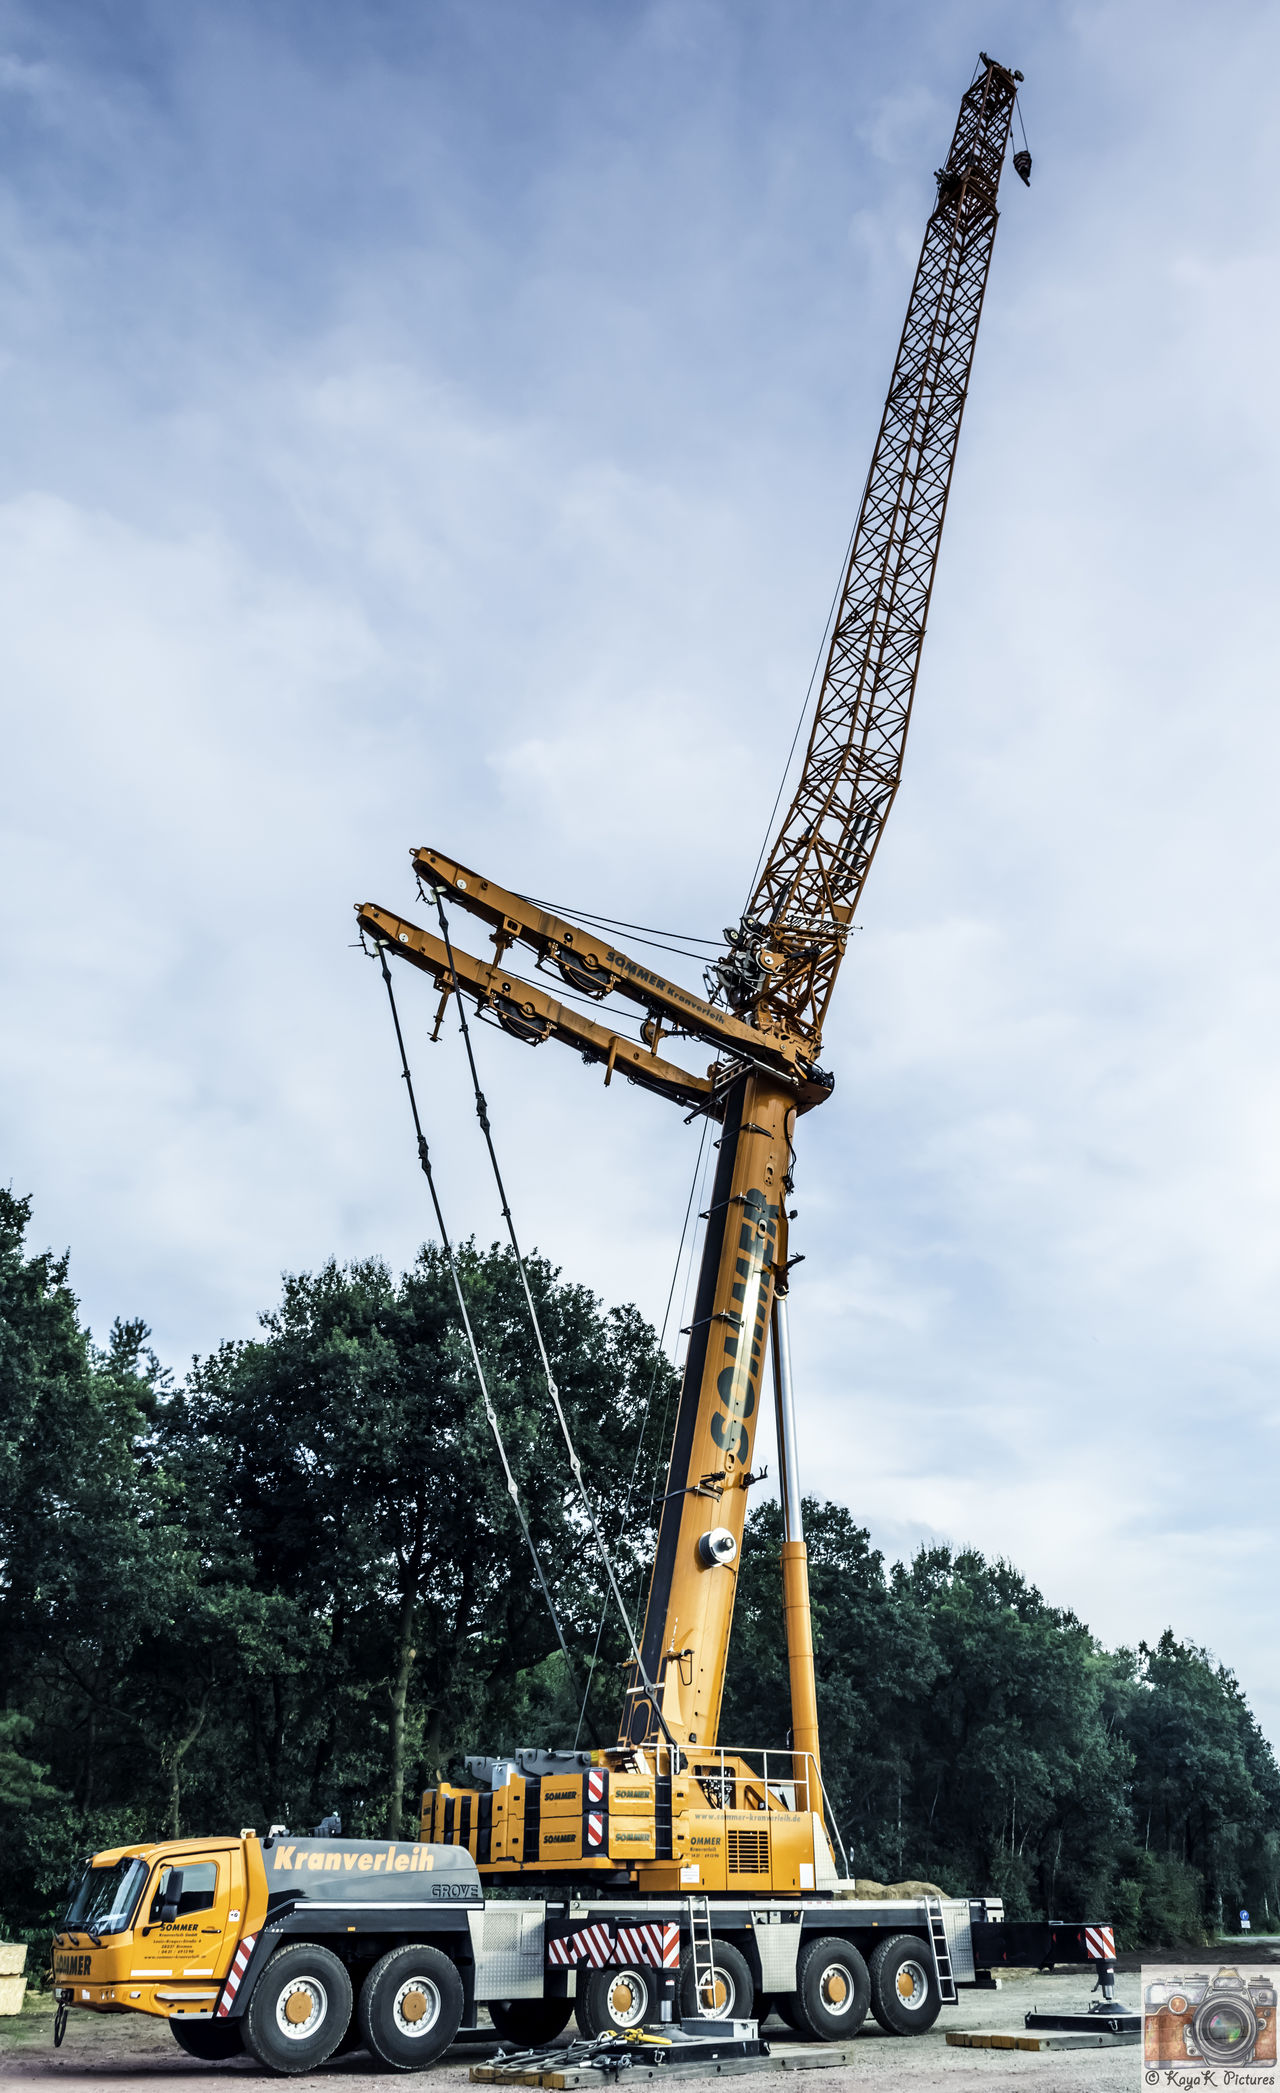 Cloud Cloud - Sky Cloudy Construction Machinery Crane Crane - Construction Machinery Crane Truck Craneporn Cranes Cranespotting Day Development Engineering Iron - Metal Low Angle View Nikon Nikon D5500 Nikon D5500 Inner Structure Model Nikonphotography No People Outdoors Sky Tall Tall - High Tower